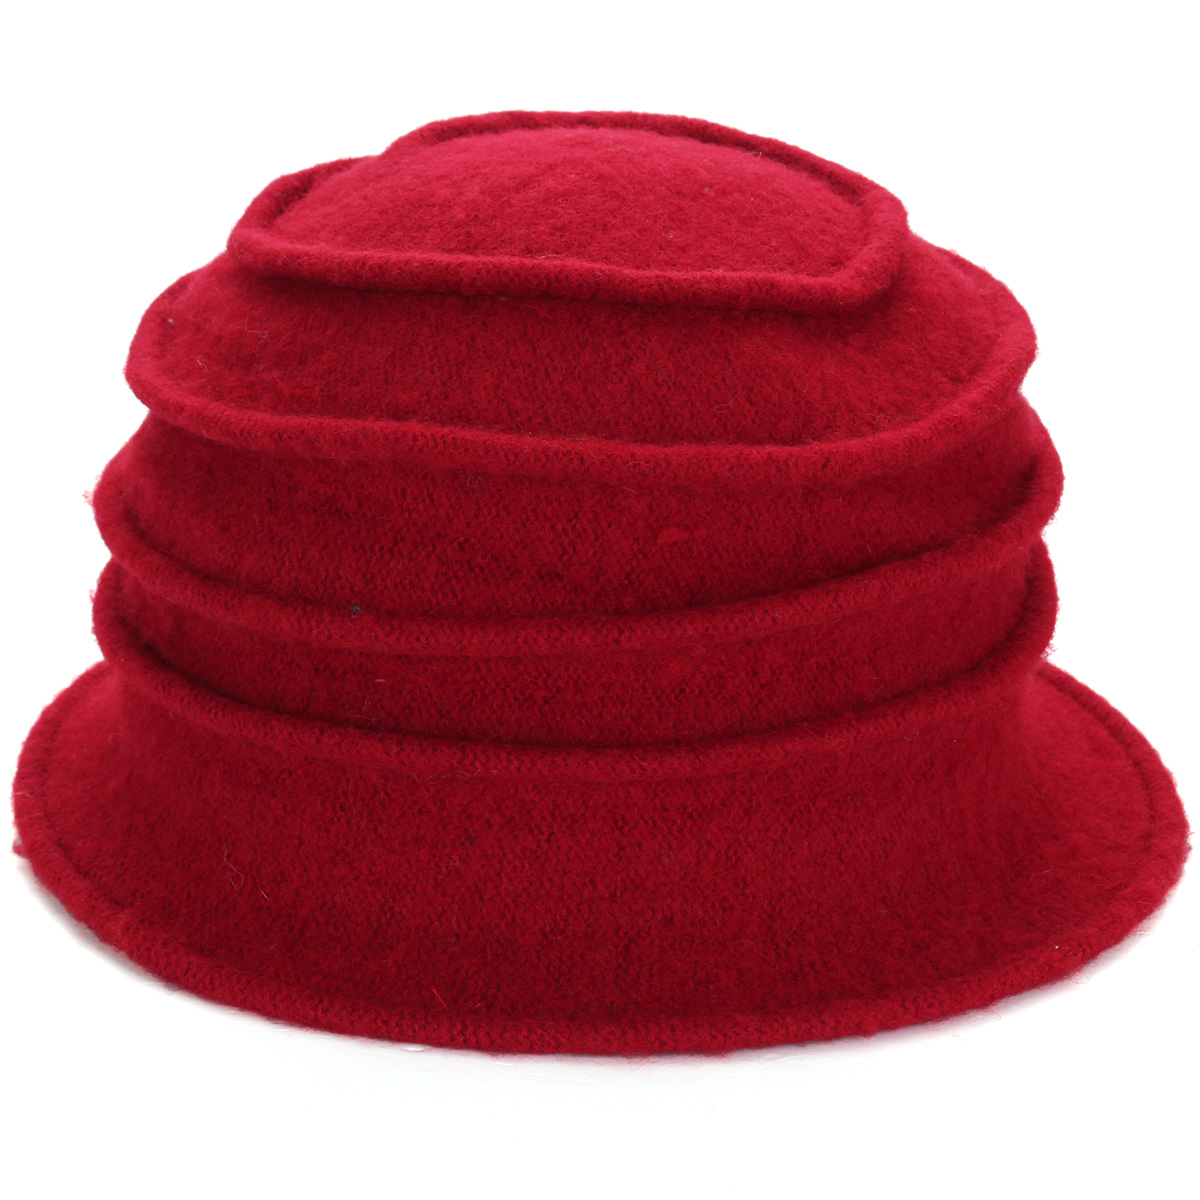 Women Ladies Flower Wool Felt Bucket Beanie Hat Cloche Cap